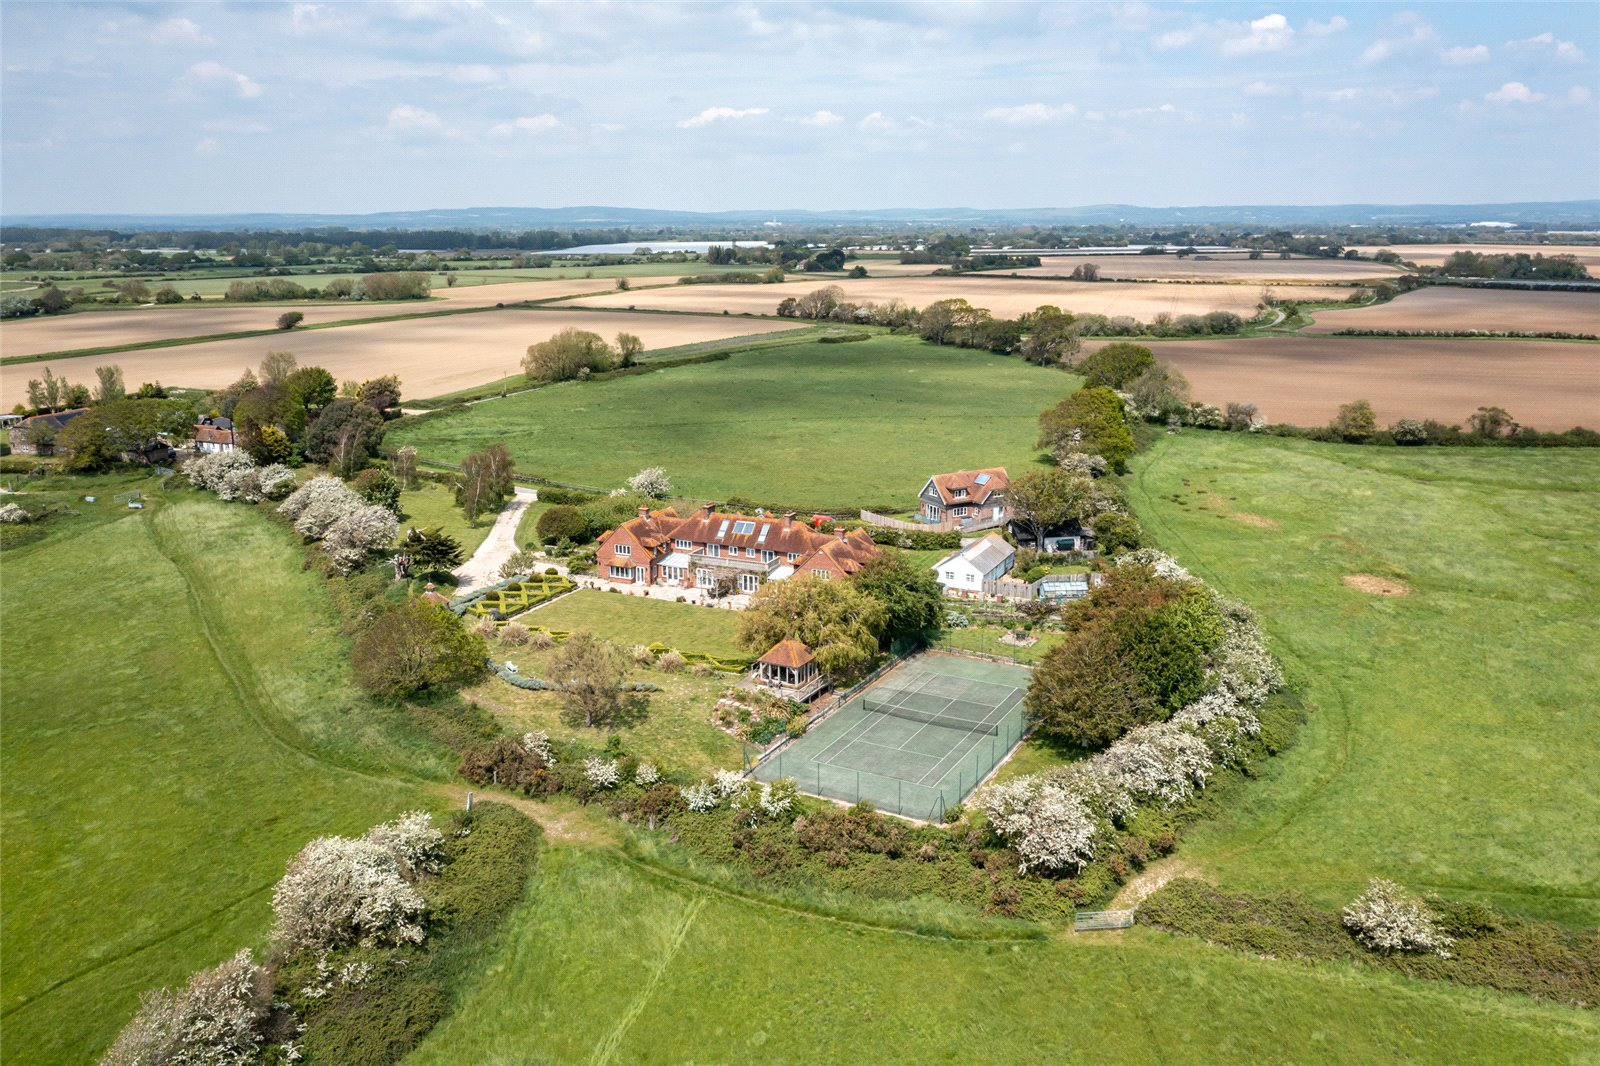 A grand country house with unparalleled nature views near Chichester - Country Life